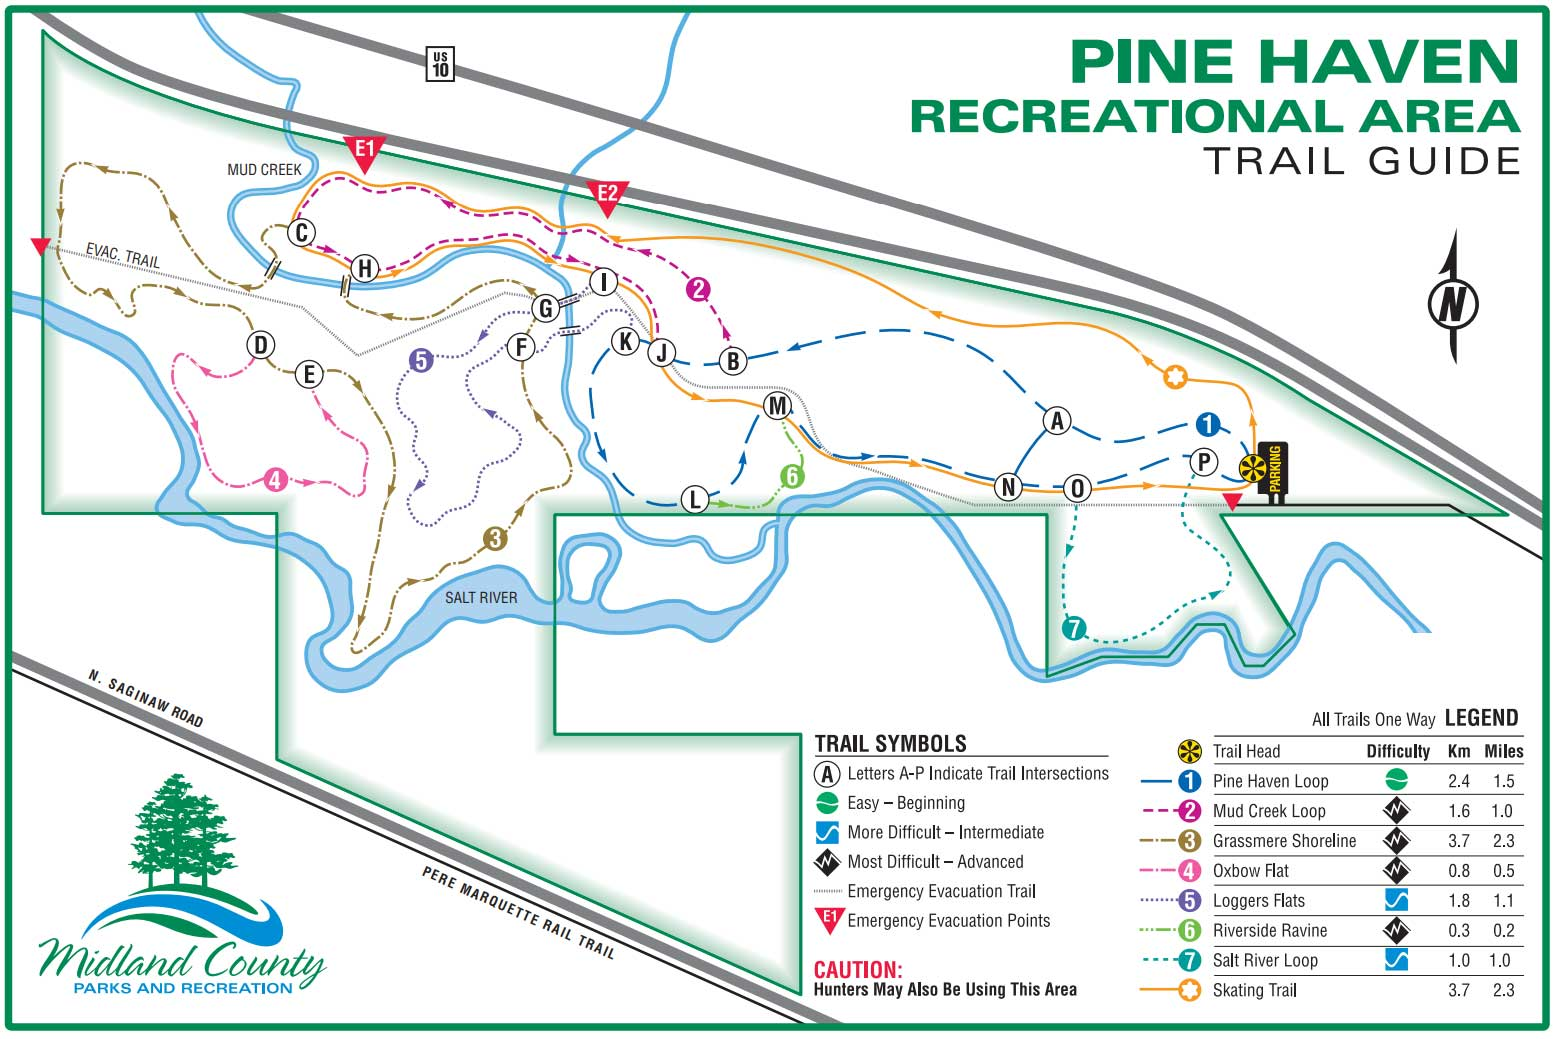 Pine Haven Recreation Area